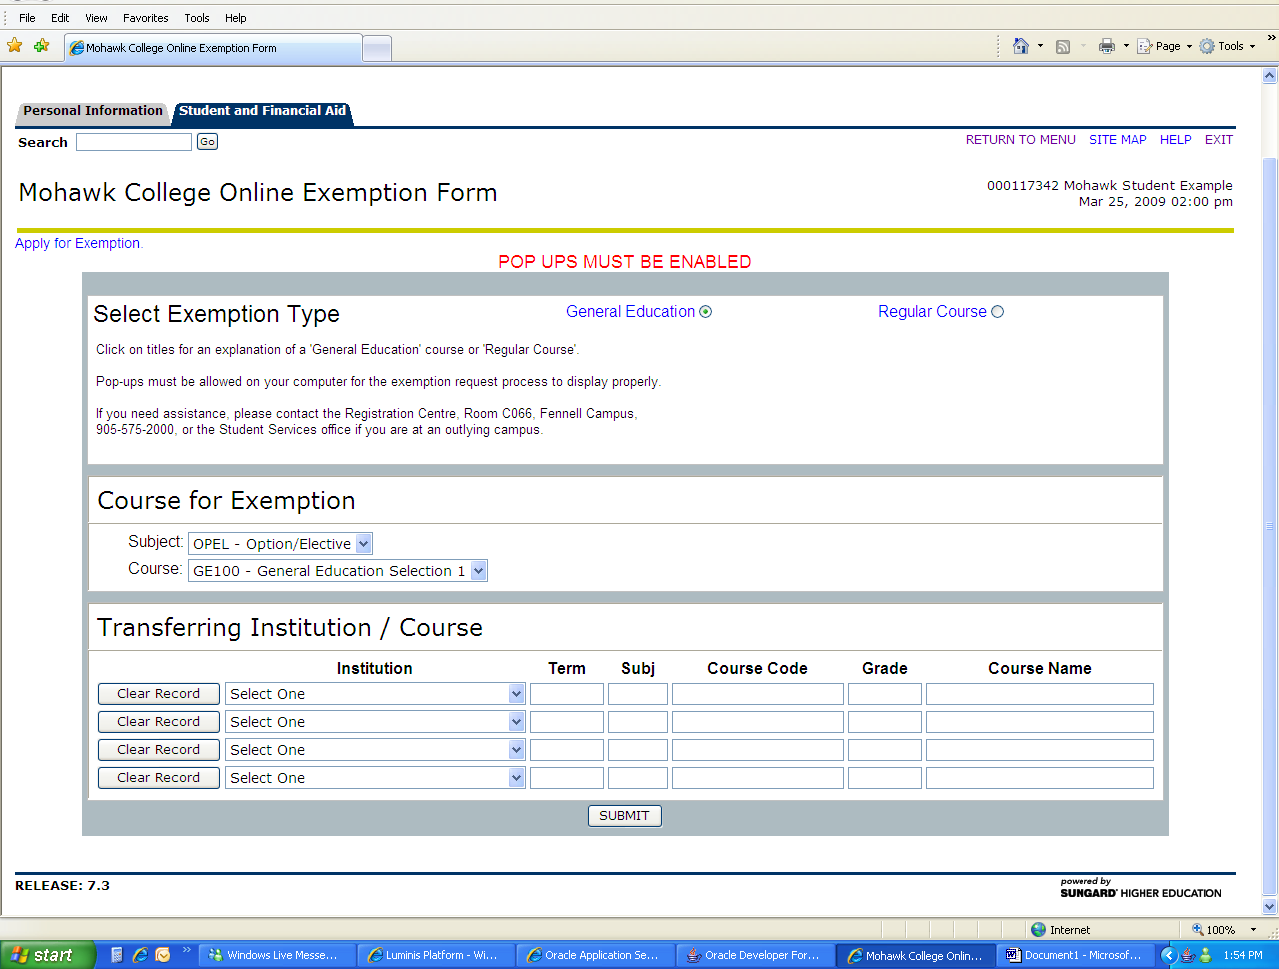 Step 3: Choose the course for exemption If the course for exemption is a General